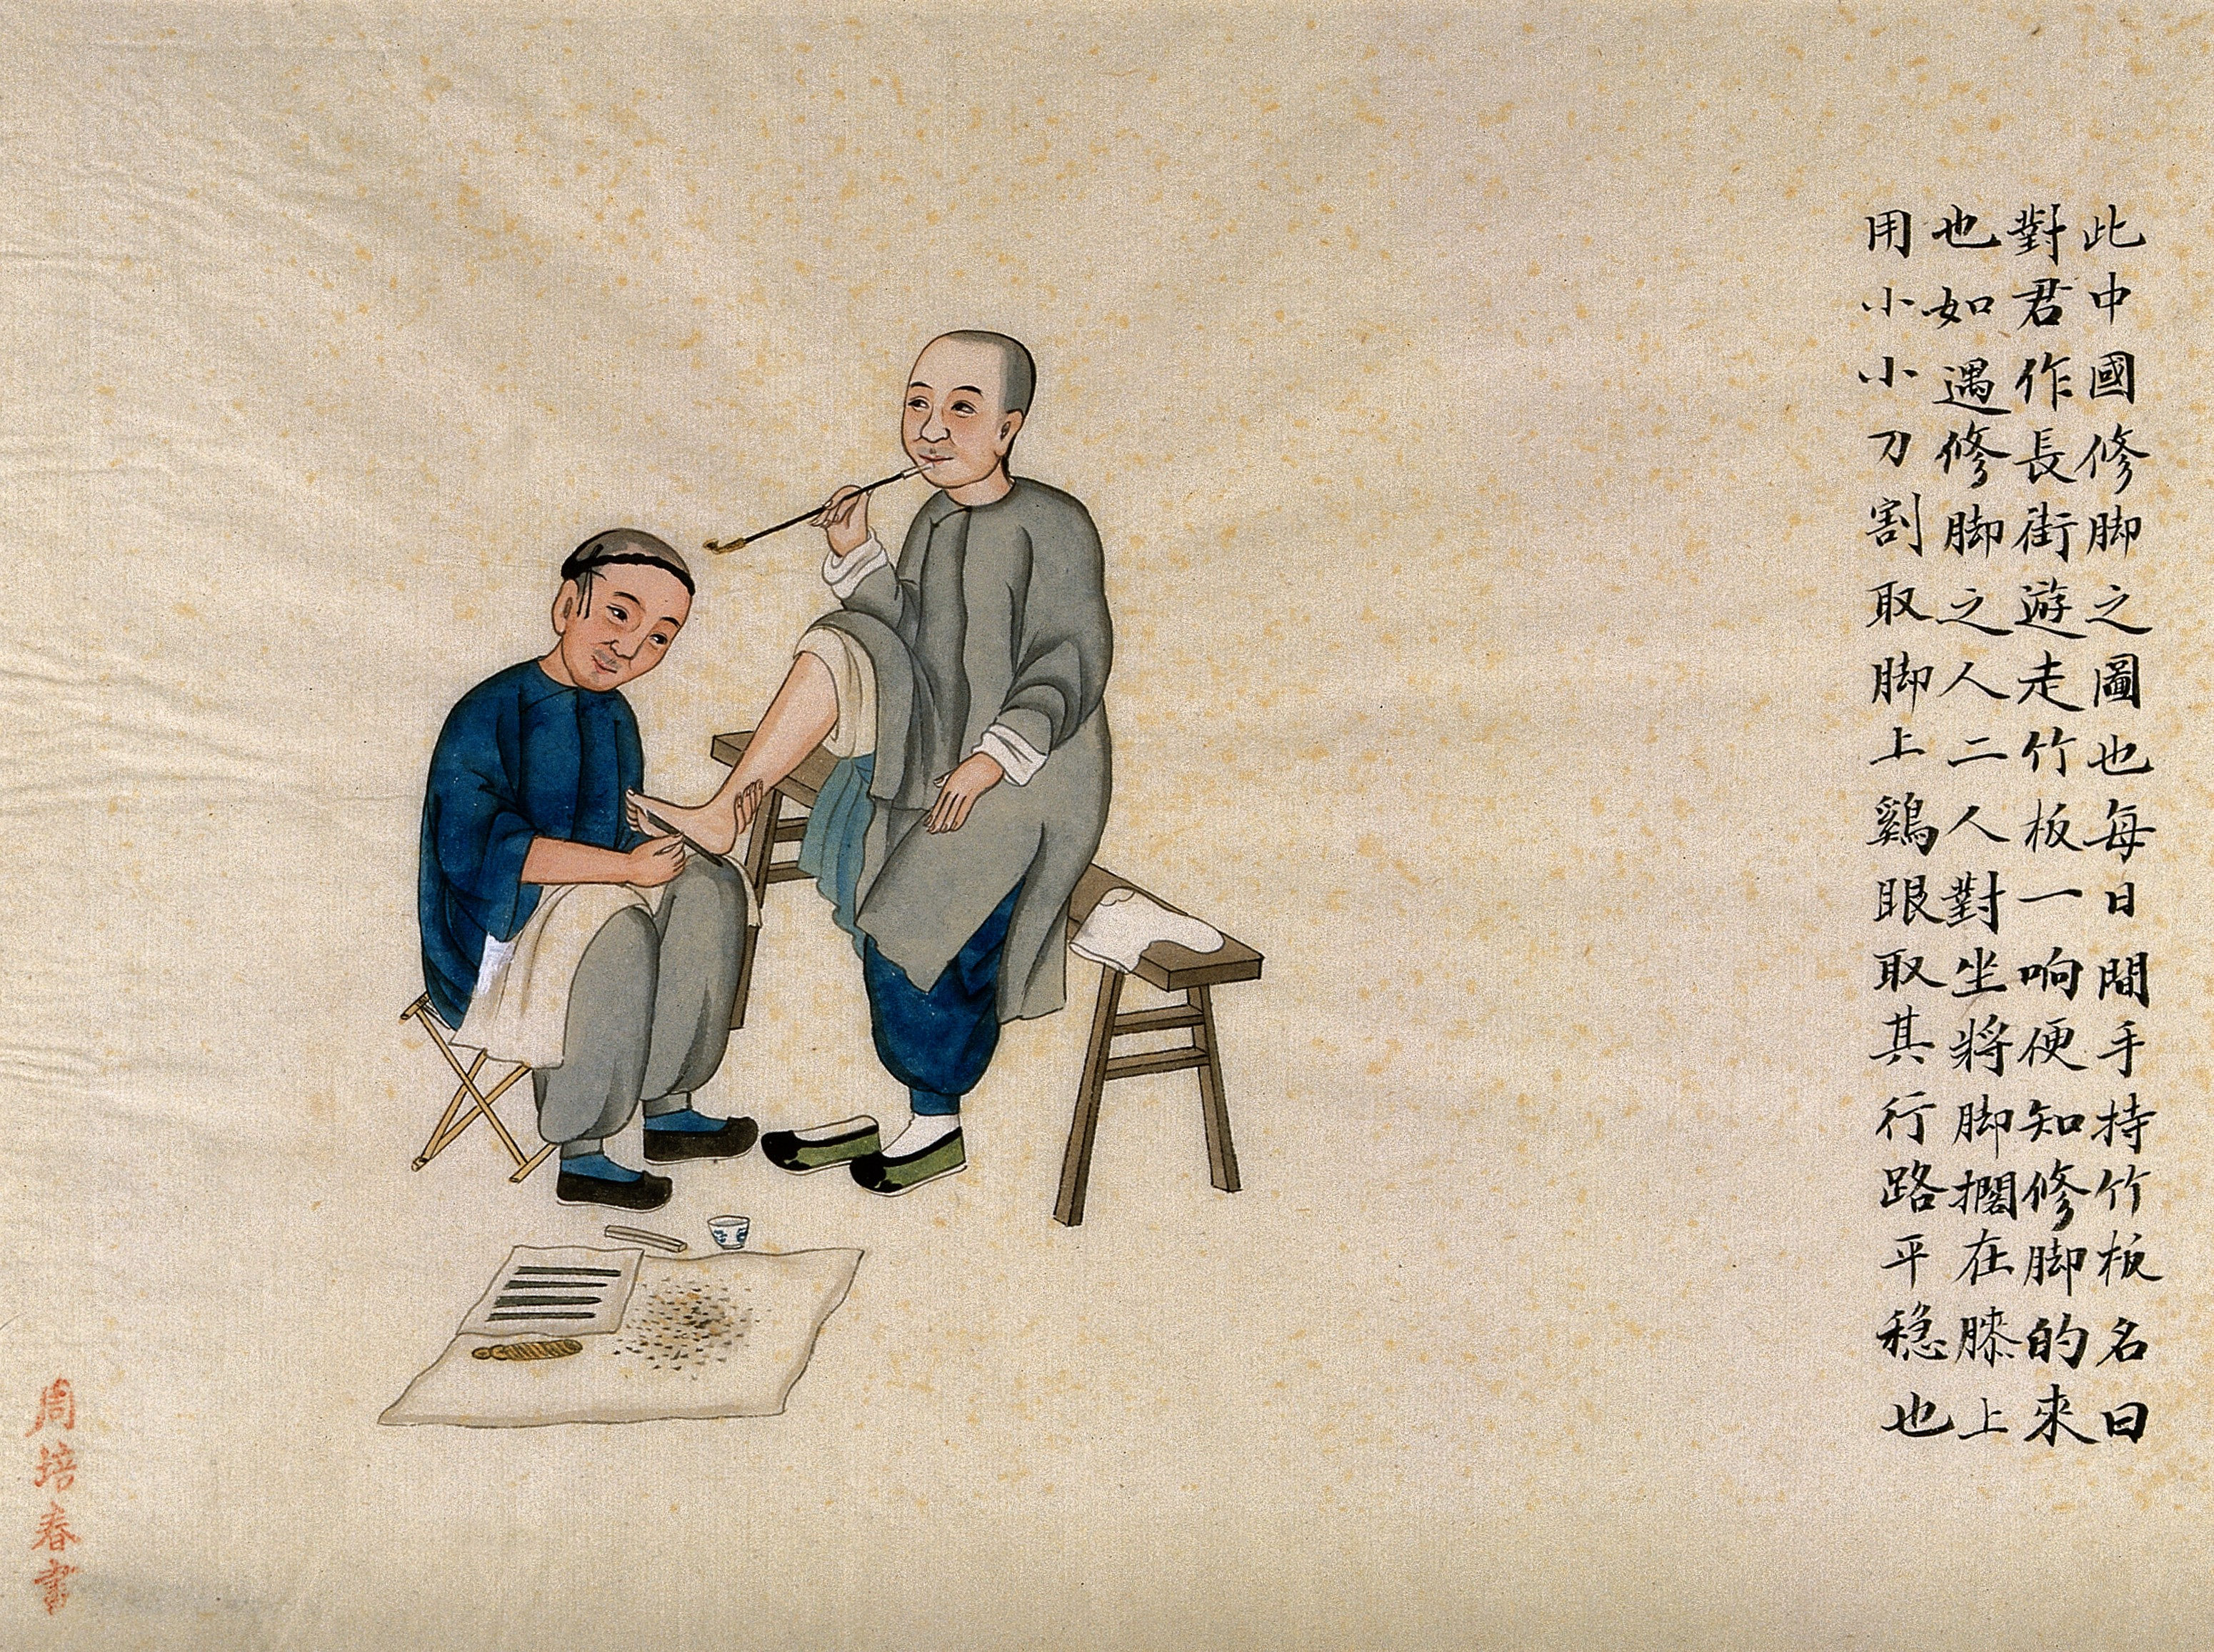 CHINESE_MEDICINE_Foot_Massage_Wellcome_V0018518.jpg